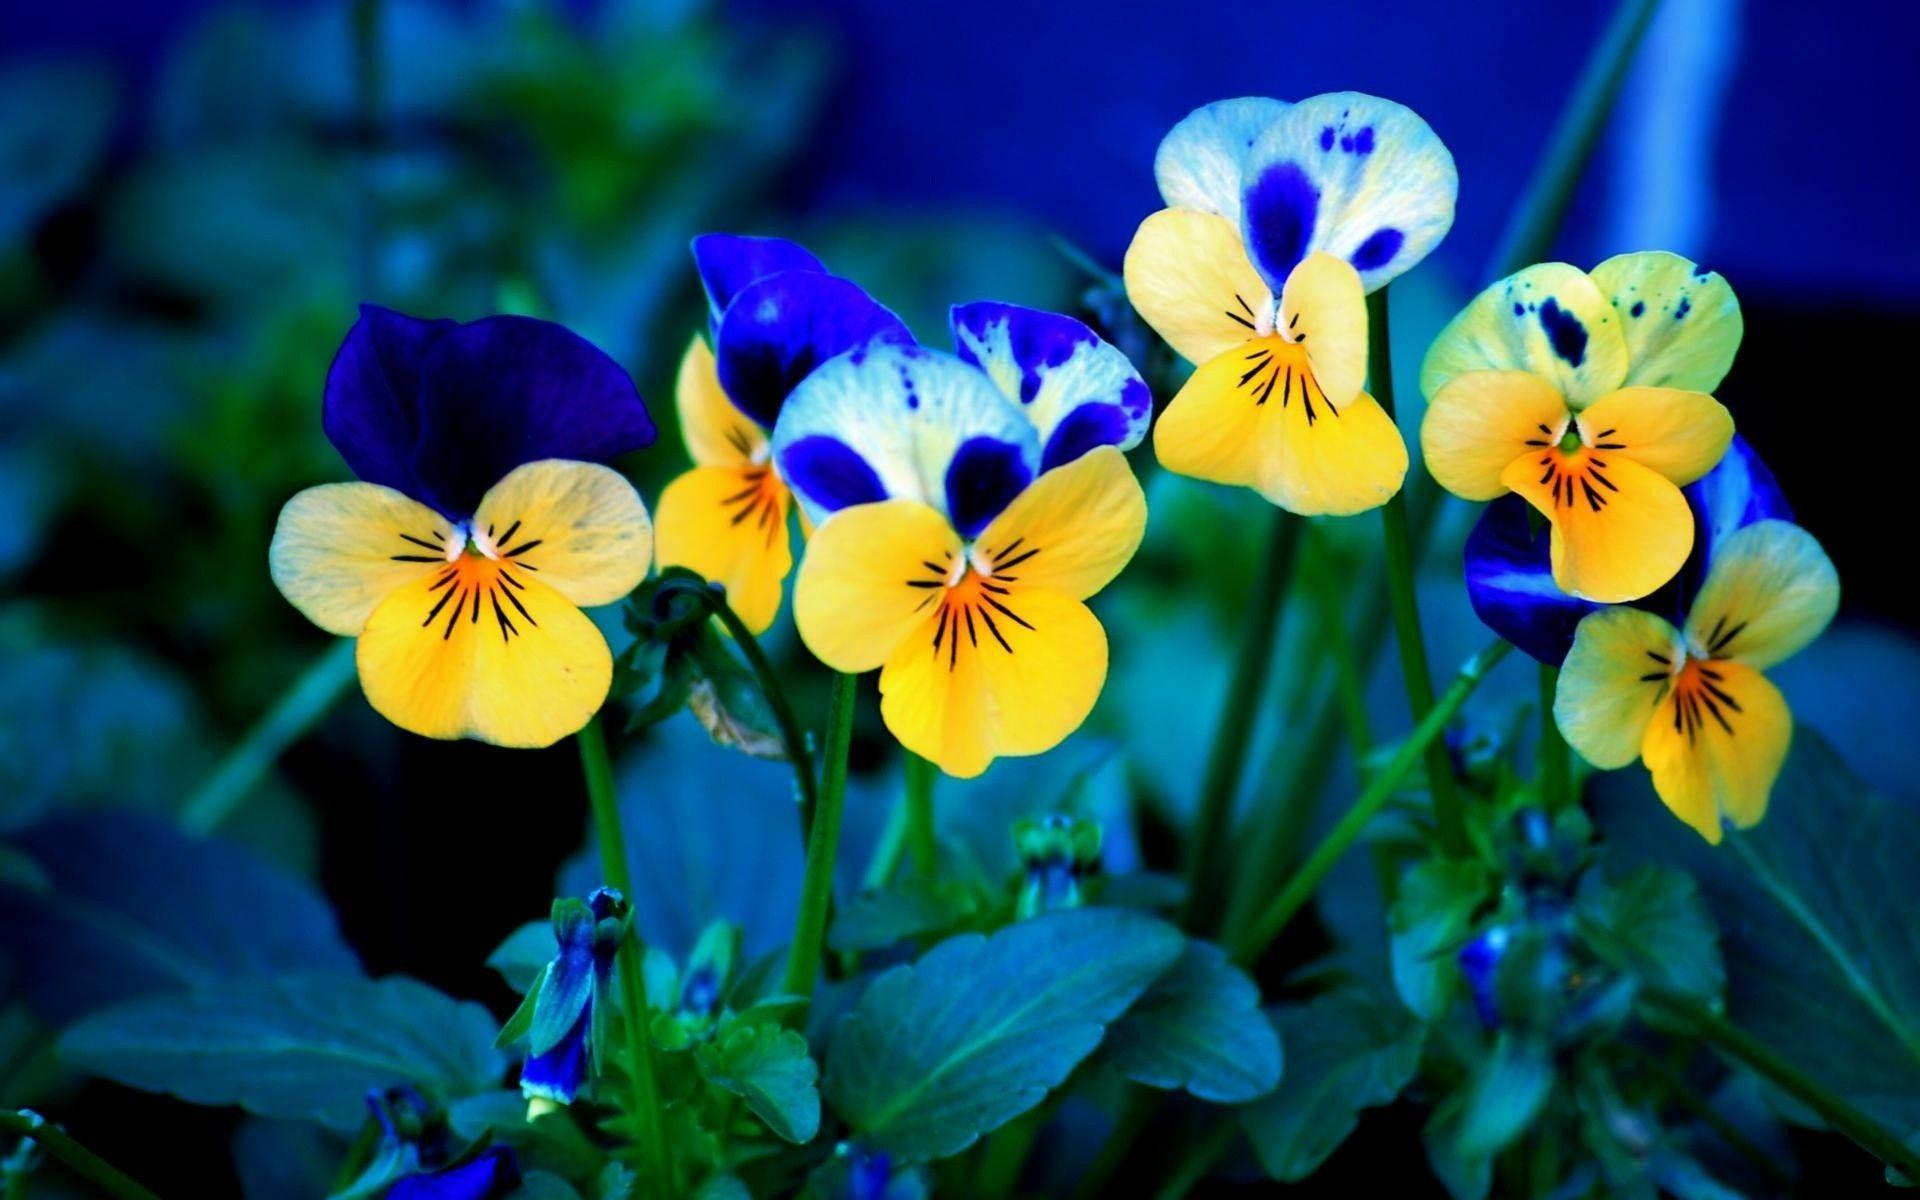 Free spring flower wallpapers wallpaper cave blue yellow spring flowers wallpaper desktop free free download mightylinksfo